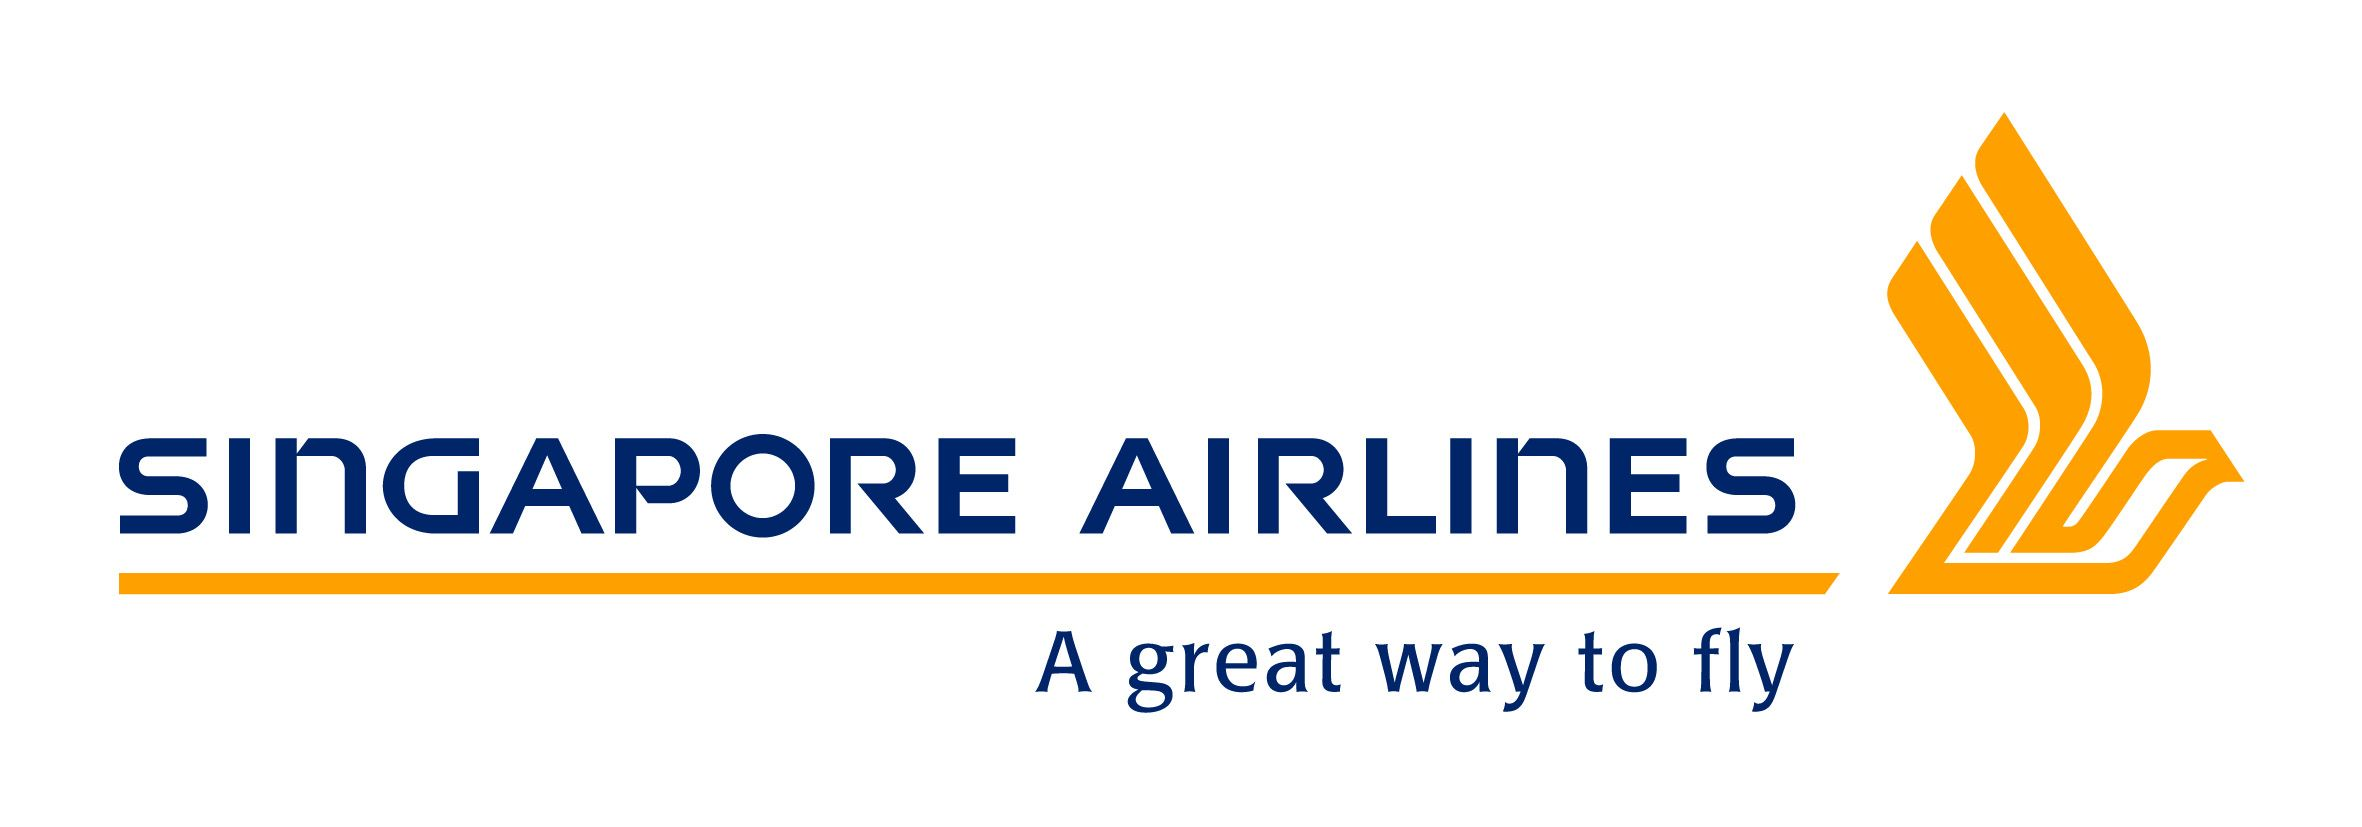 Singapore Airlines Logo - singapore-airlines-logo-banner - Scholz & Friends